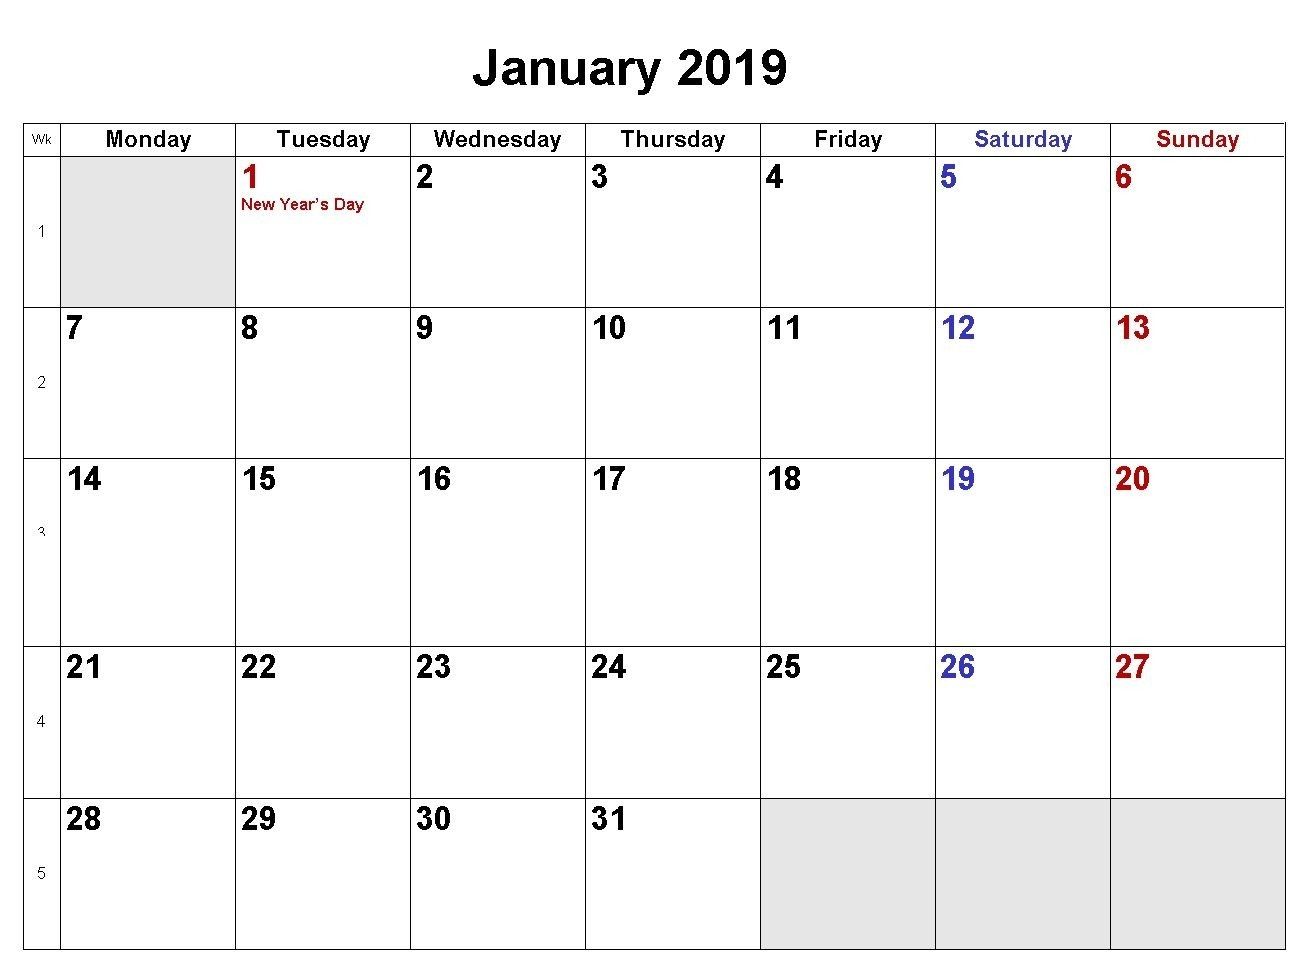 Calendar For Word - Wpa.wpart.co-Blank Yearly Calendar Template In Word 2003